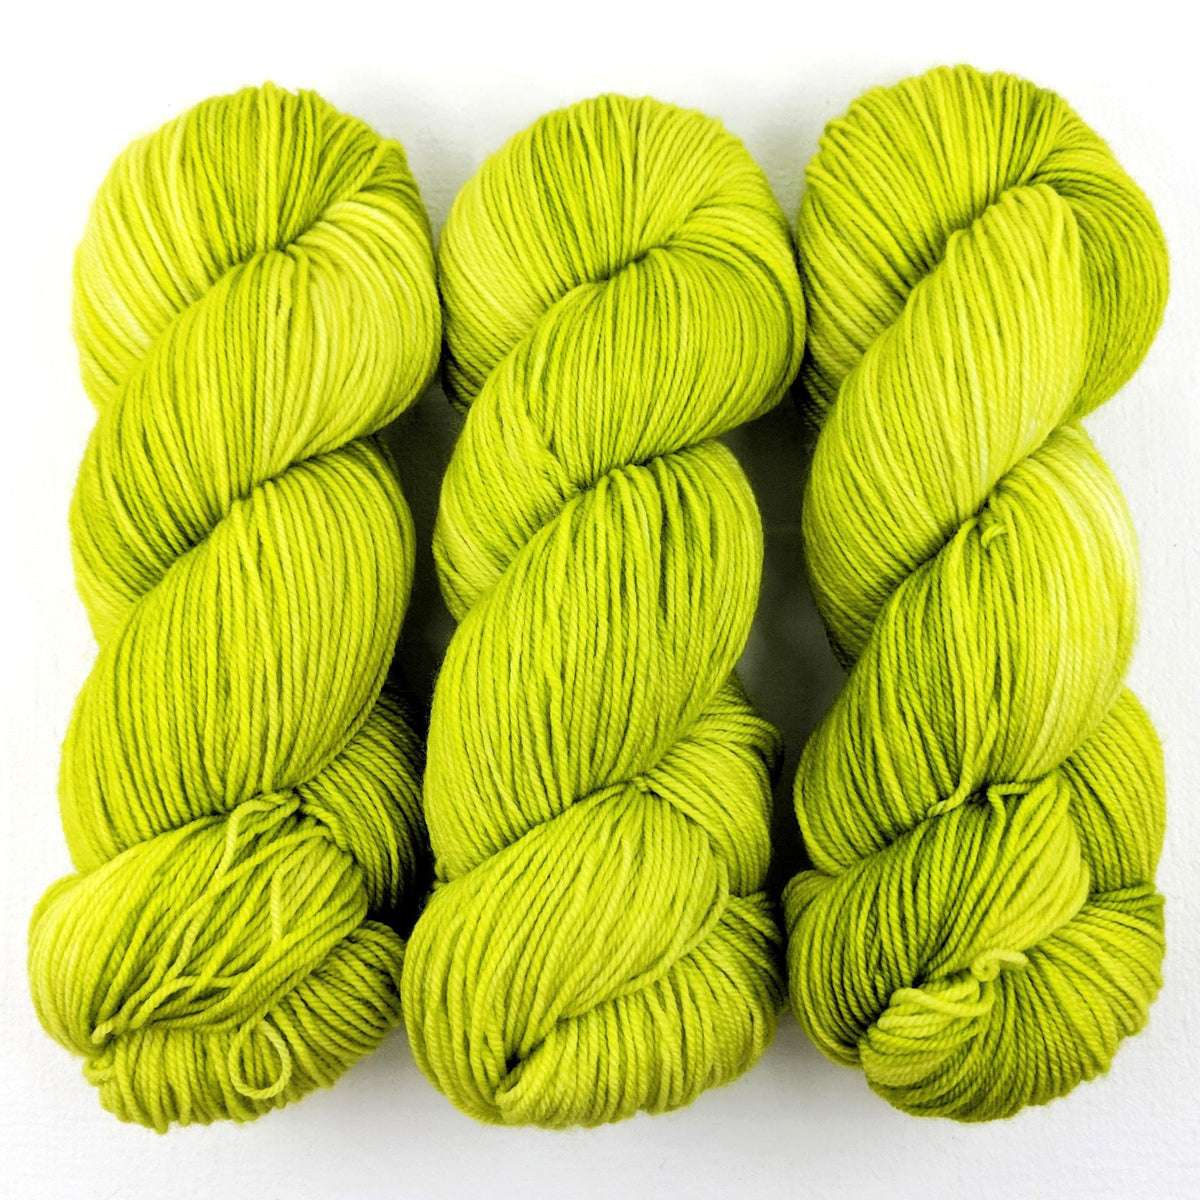 Soda Pop in Worsted Weight